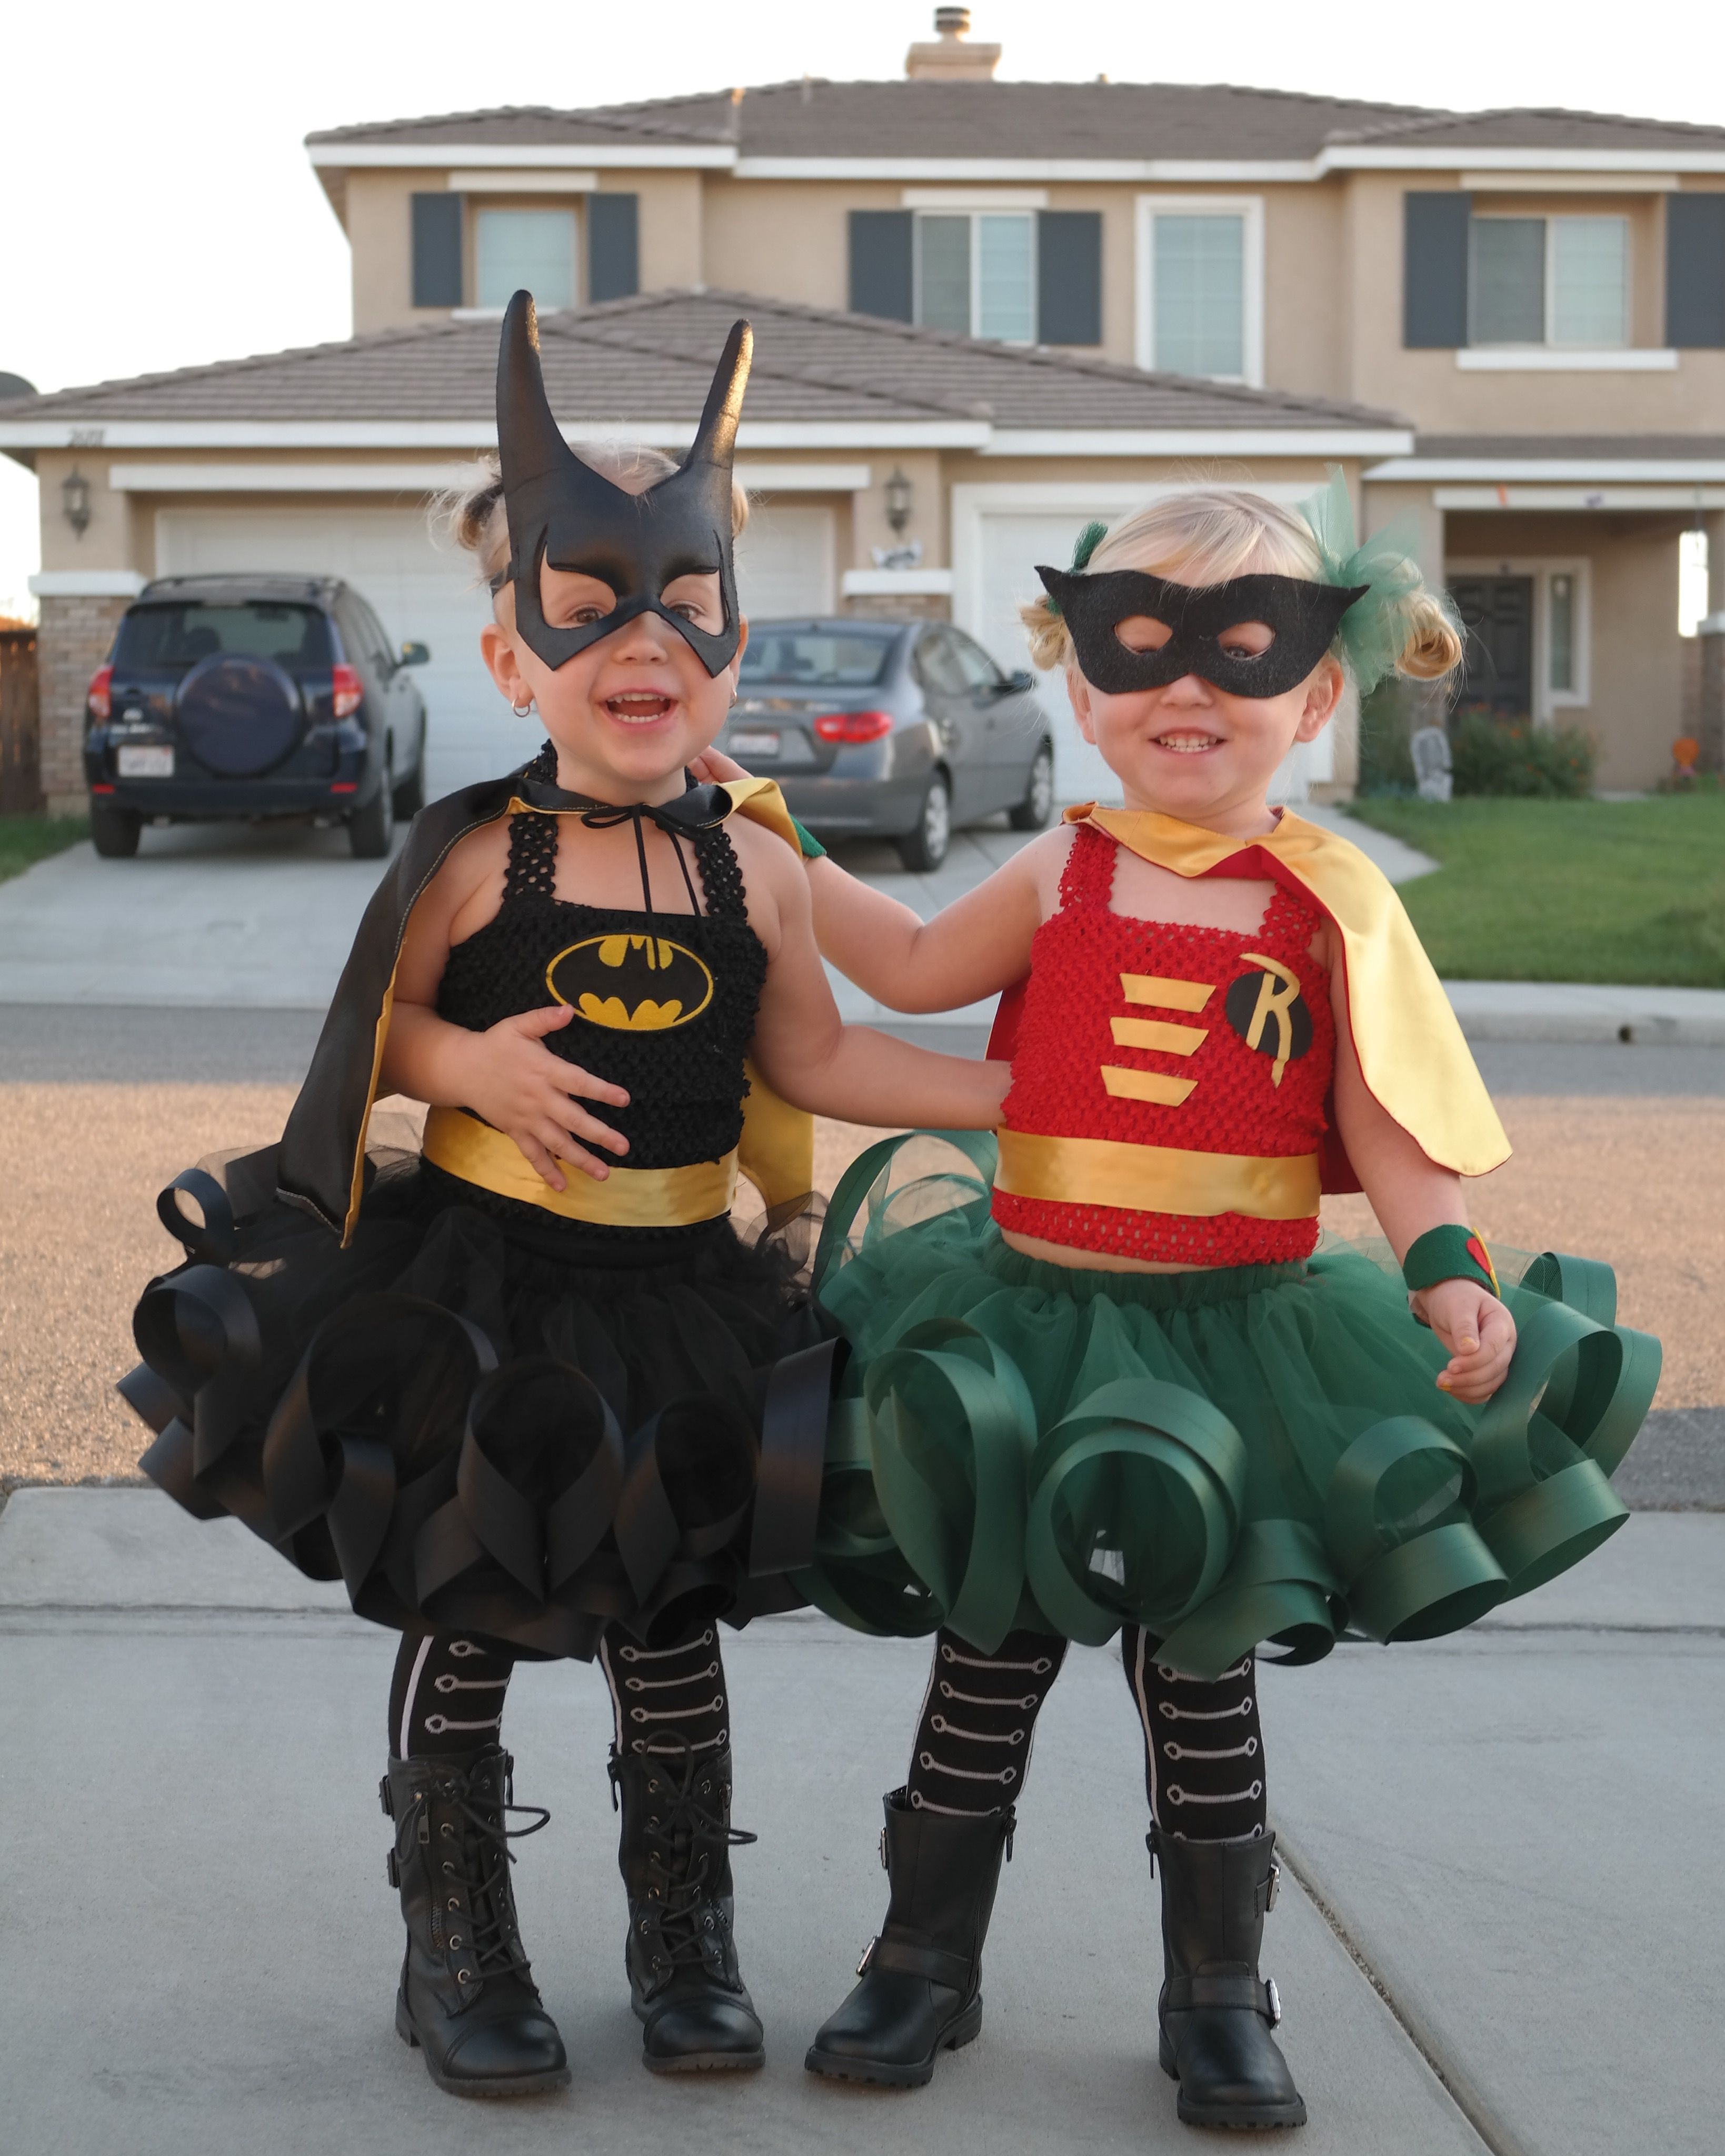 Batman and Robin!  I made the costumes for (BFF's) Andie as Batman (girl)  and Chloe as Robin (girl)